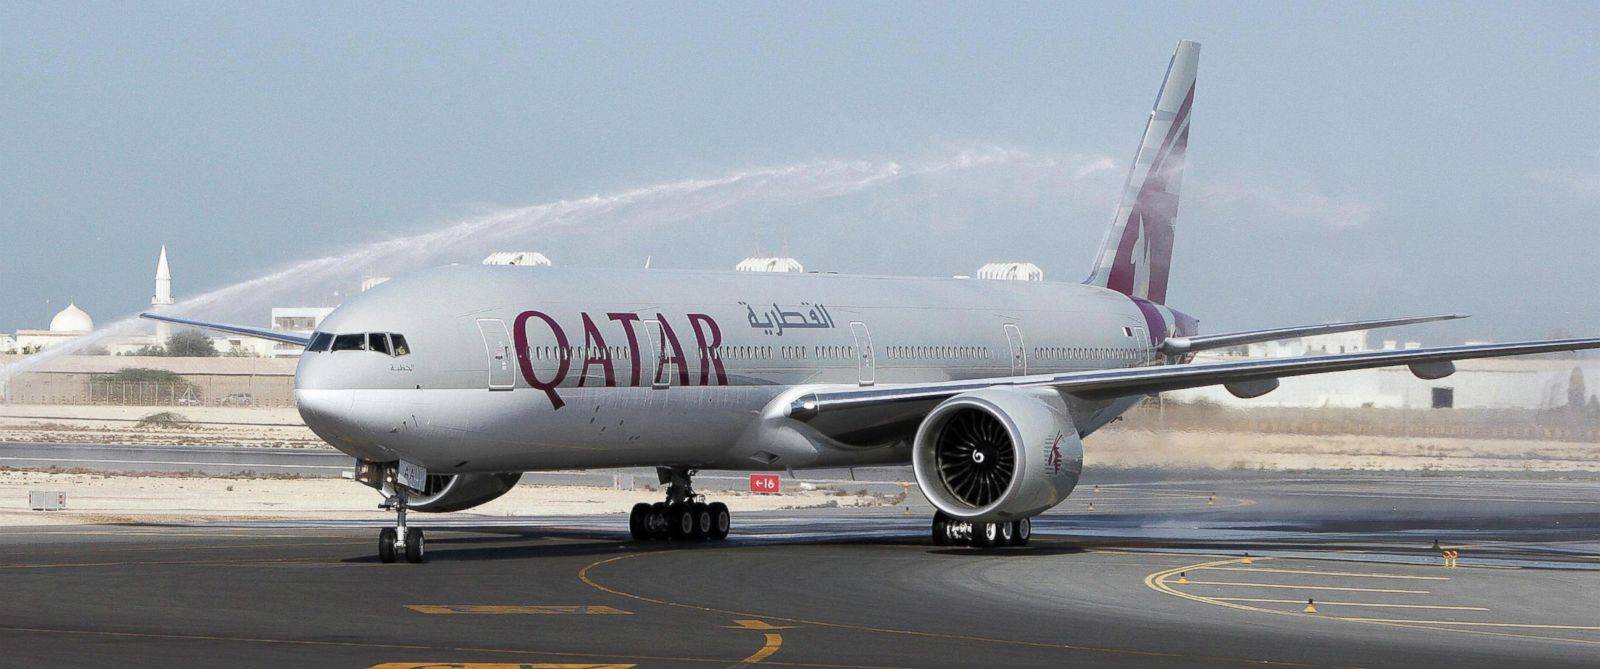 PHOTO: The first-ever Boeing aircraft 777 delivered to the state-owned Qatar Airways stands on the runway at Doha airport, Nov. 29, 2007.